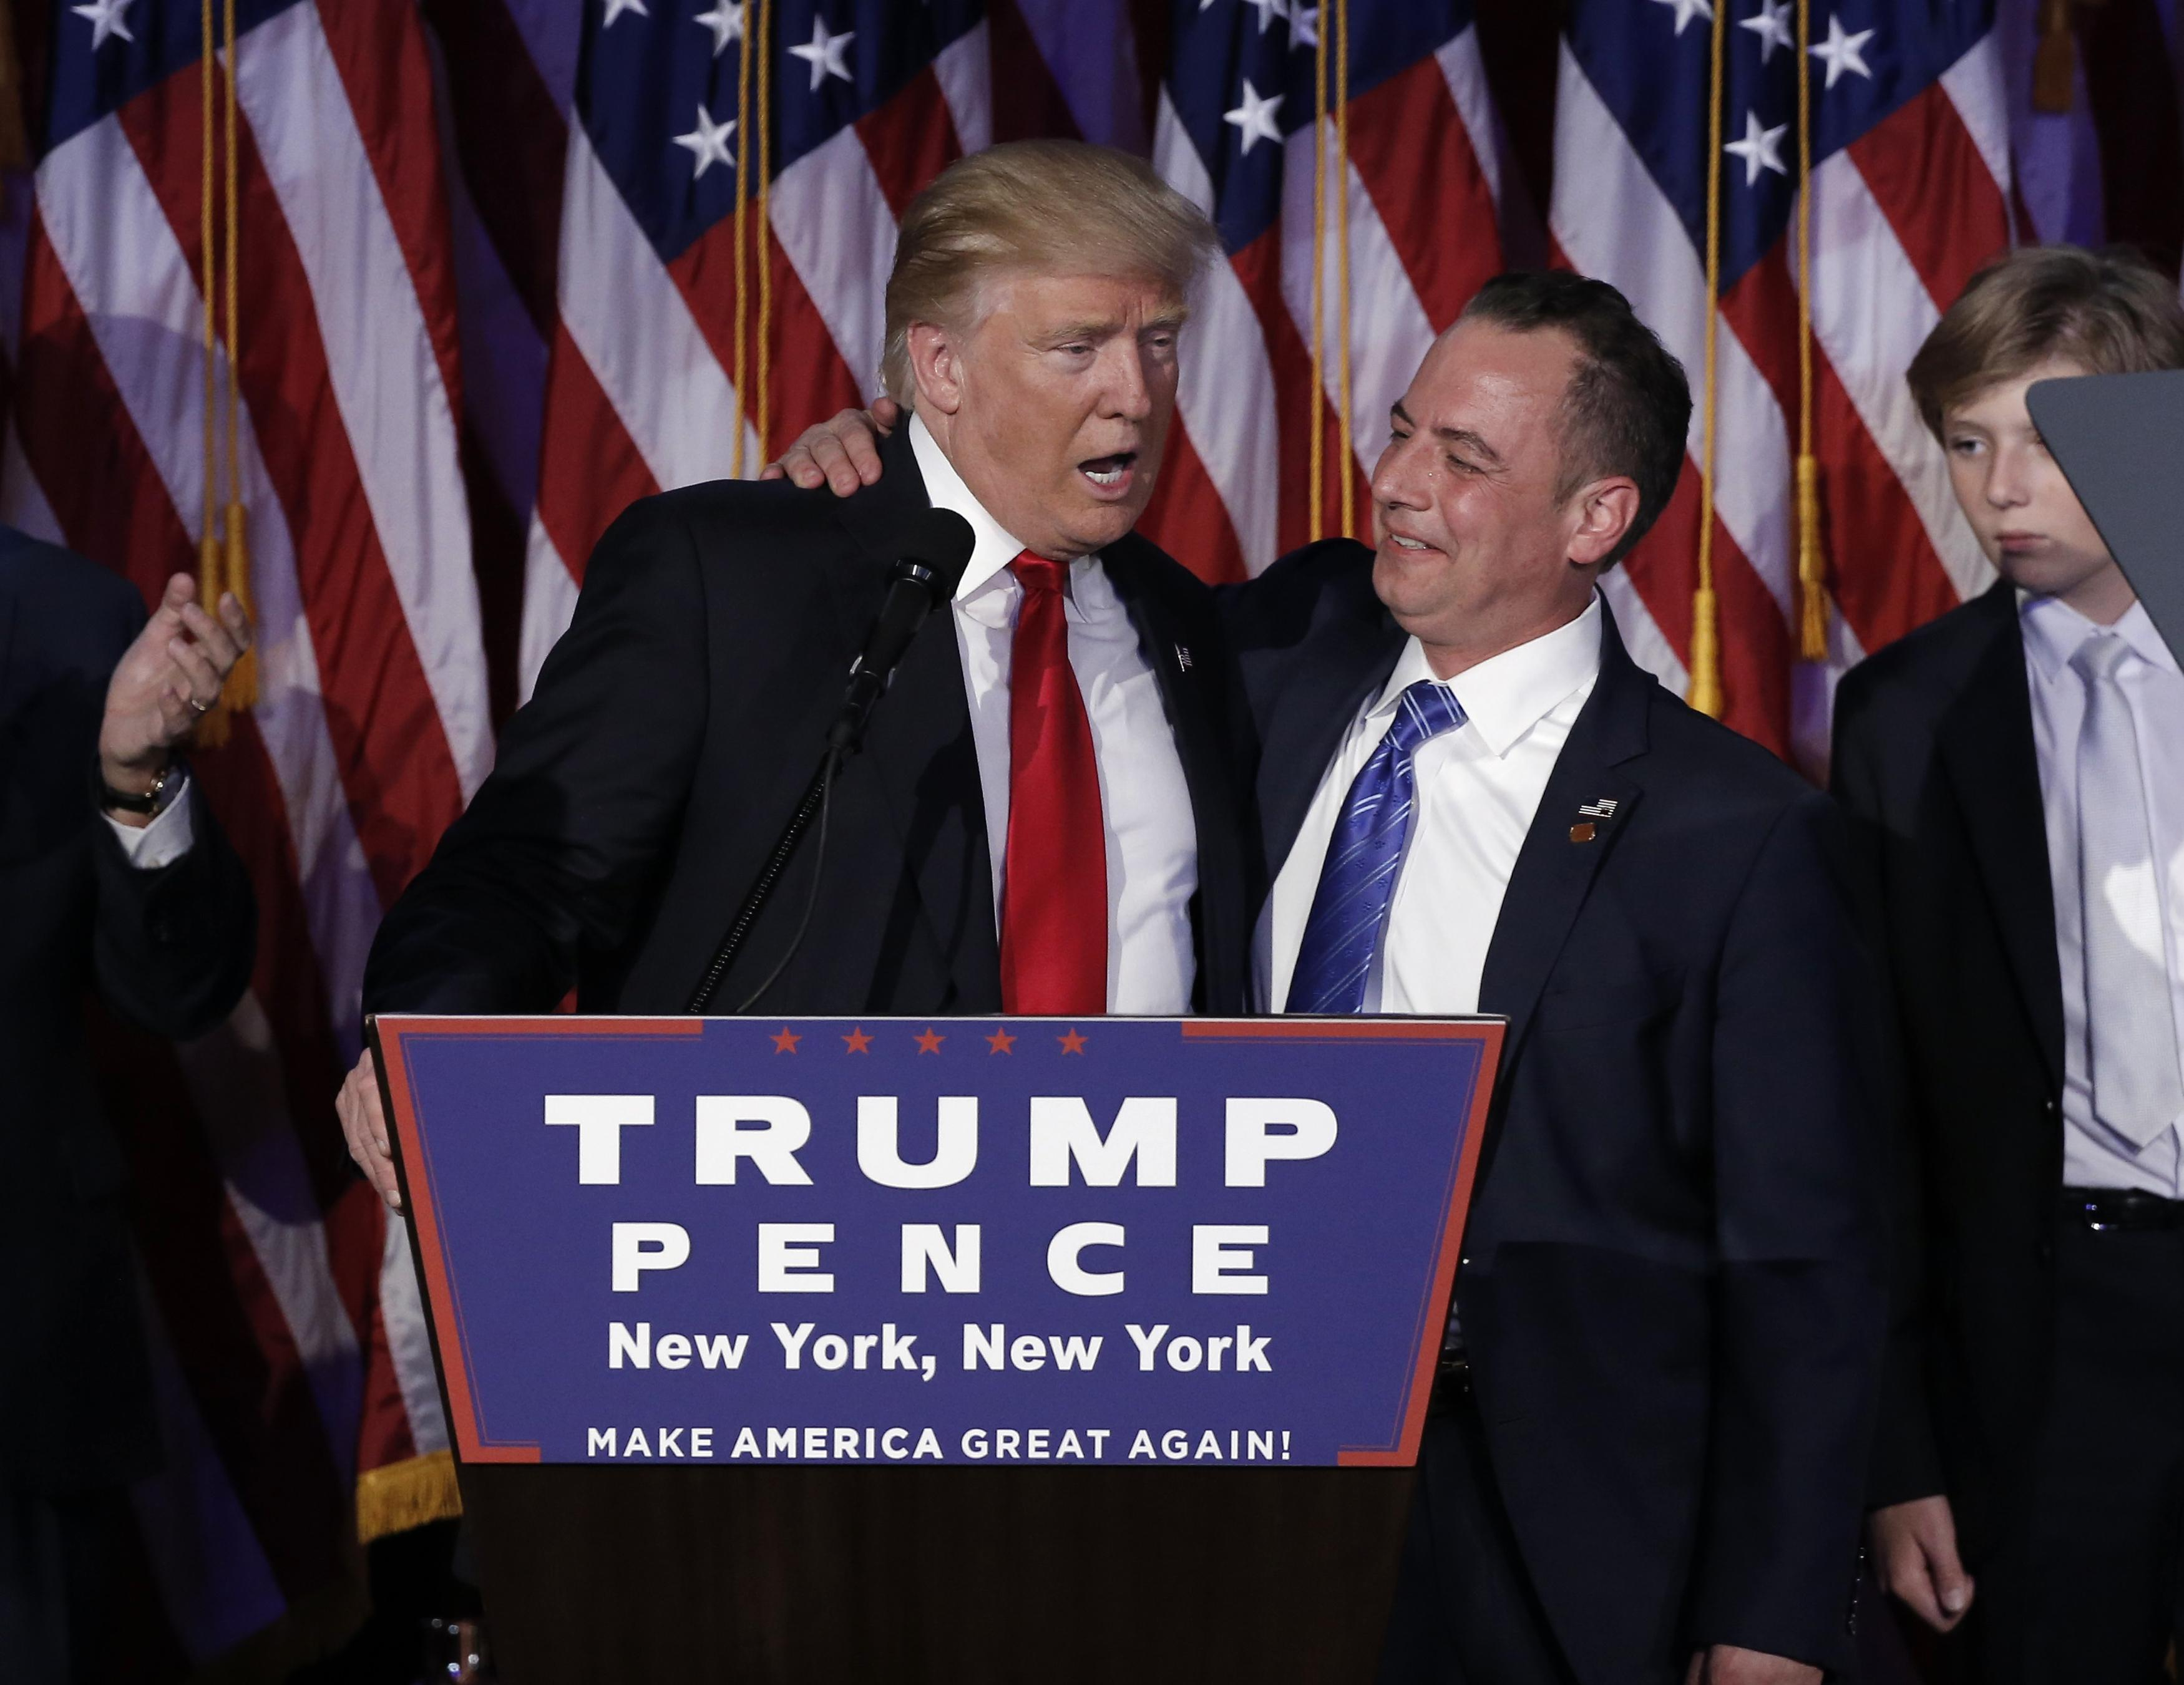 Trump and Priebus